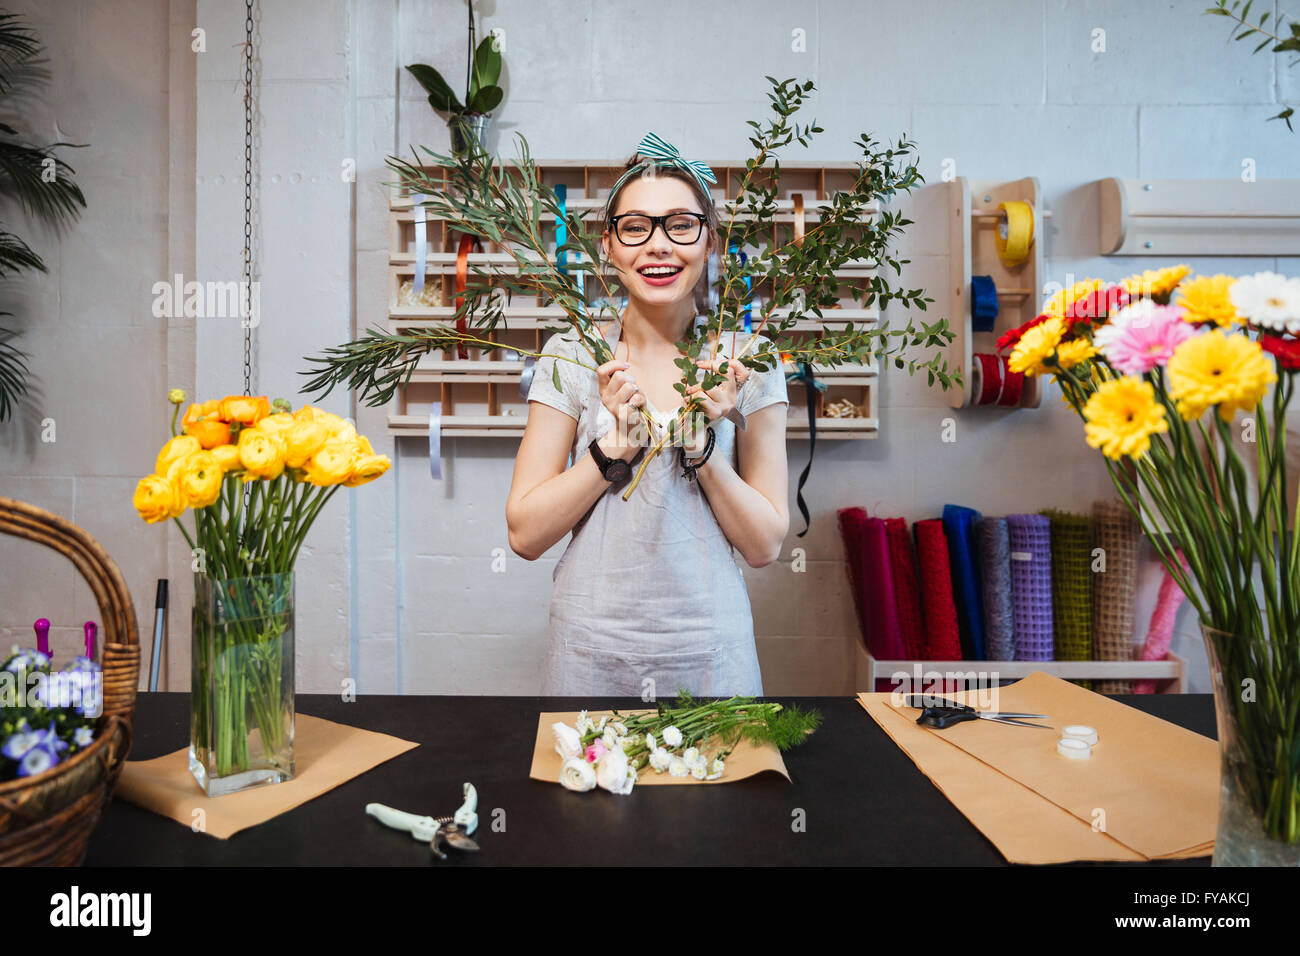 Cheerful amusing young woman florist making bouquet and having fun in flower shop - Stock Image